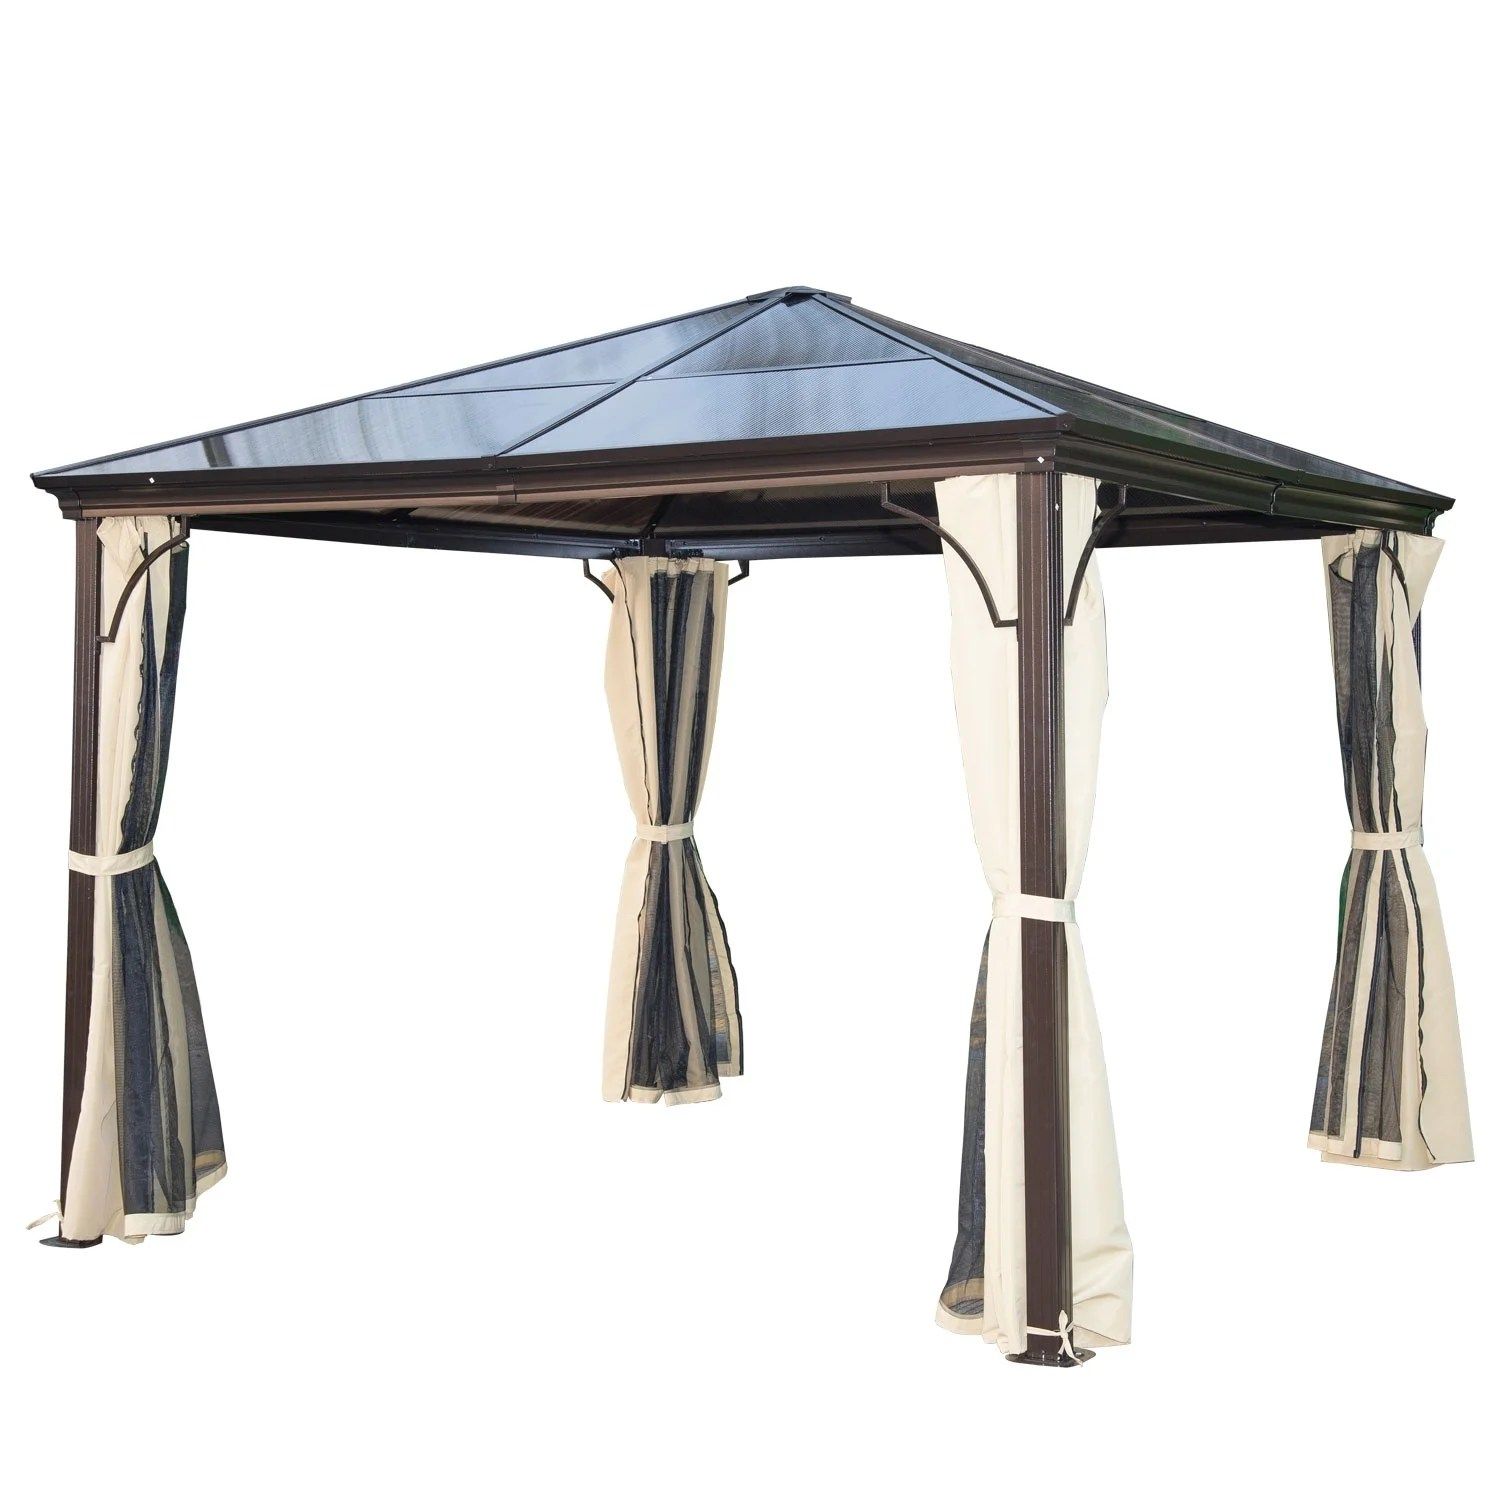 Pop Up Sun Shelter Canada Buy Gazebos Pergolas Online At Overstock Our Best Patio